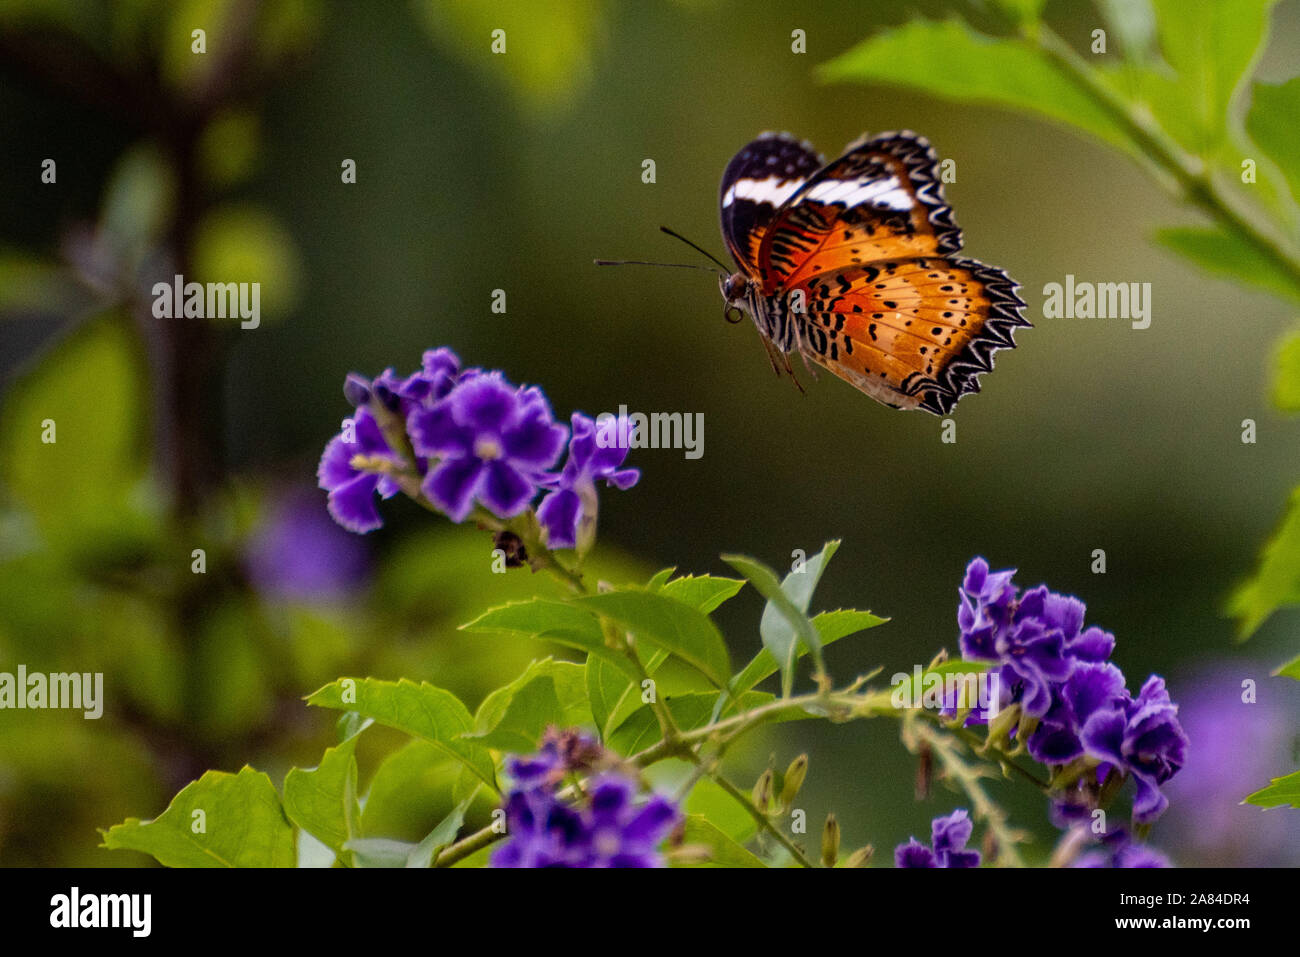 Fluttering Flight Mechanisms in Insects Stock Photo